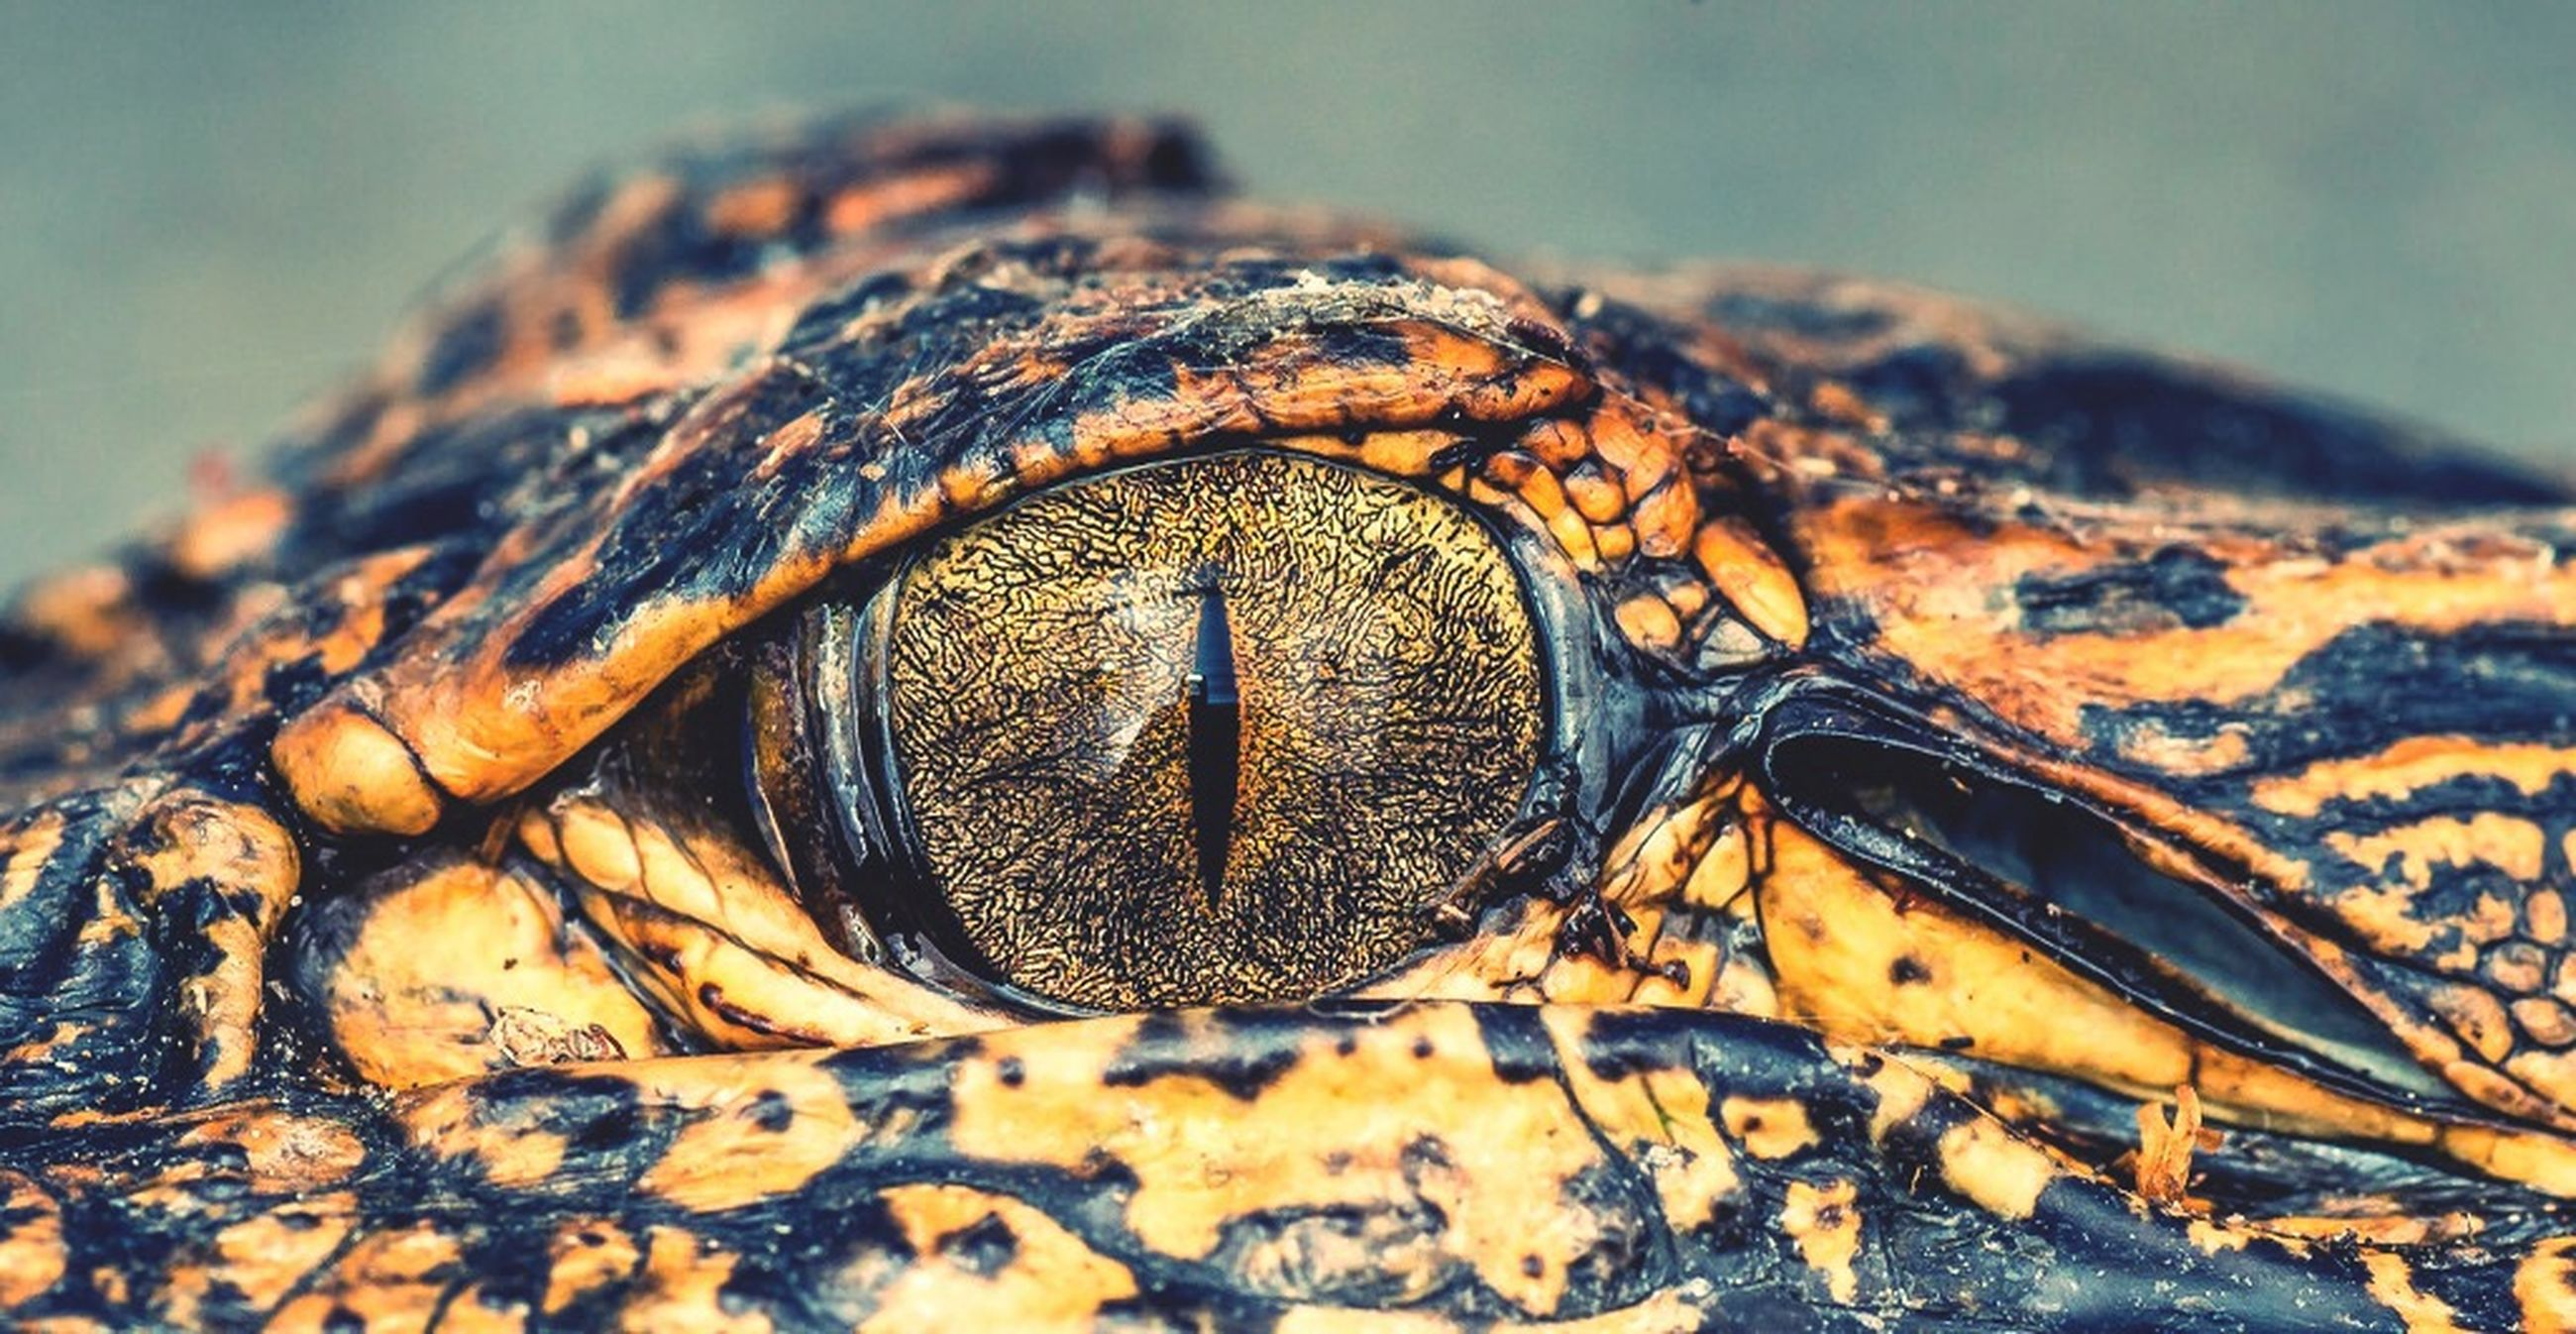 close-up, focus on foreground, one animal, animals in the wild, animal themes, natural pattern, wildlife, outdoors, pattern, selective focus, part of, day, nature, animal head, animal body part, no people, textured, reptile, animal markings, detail